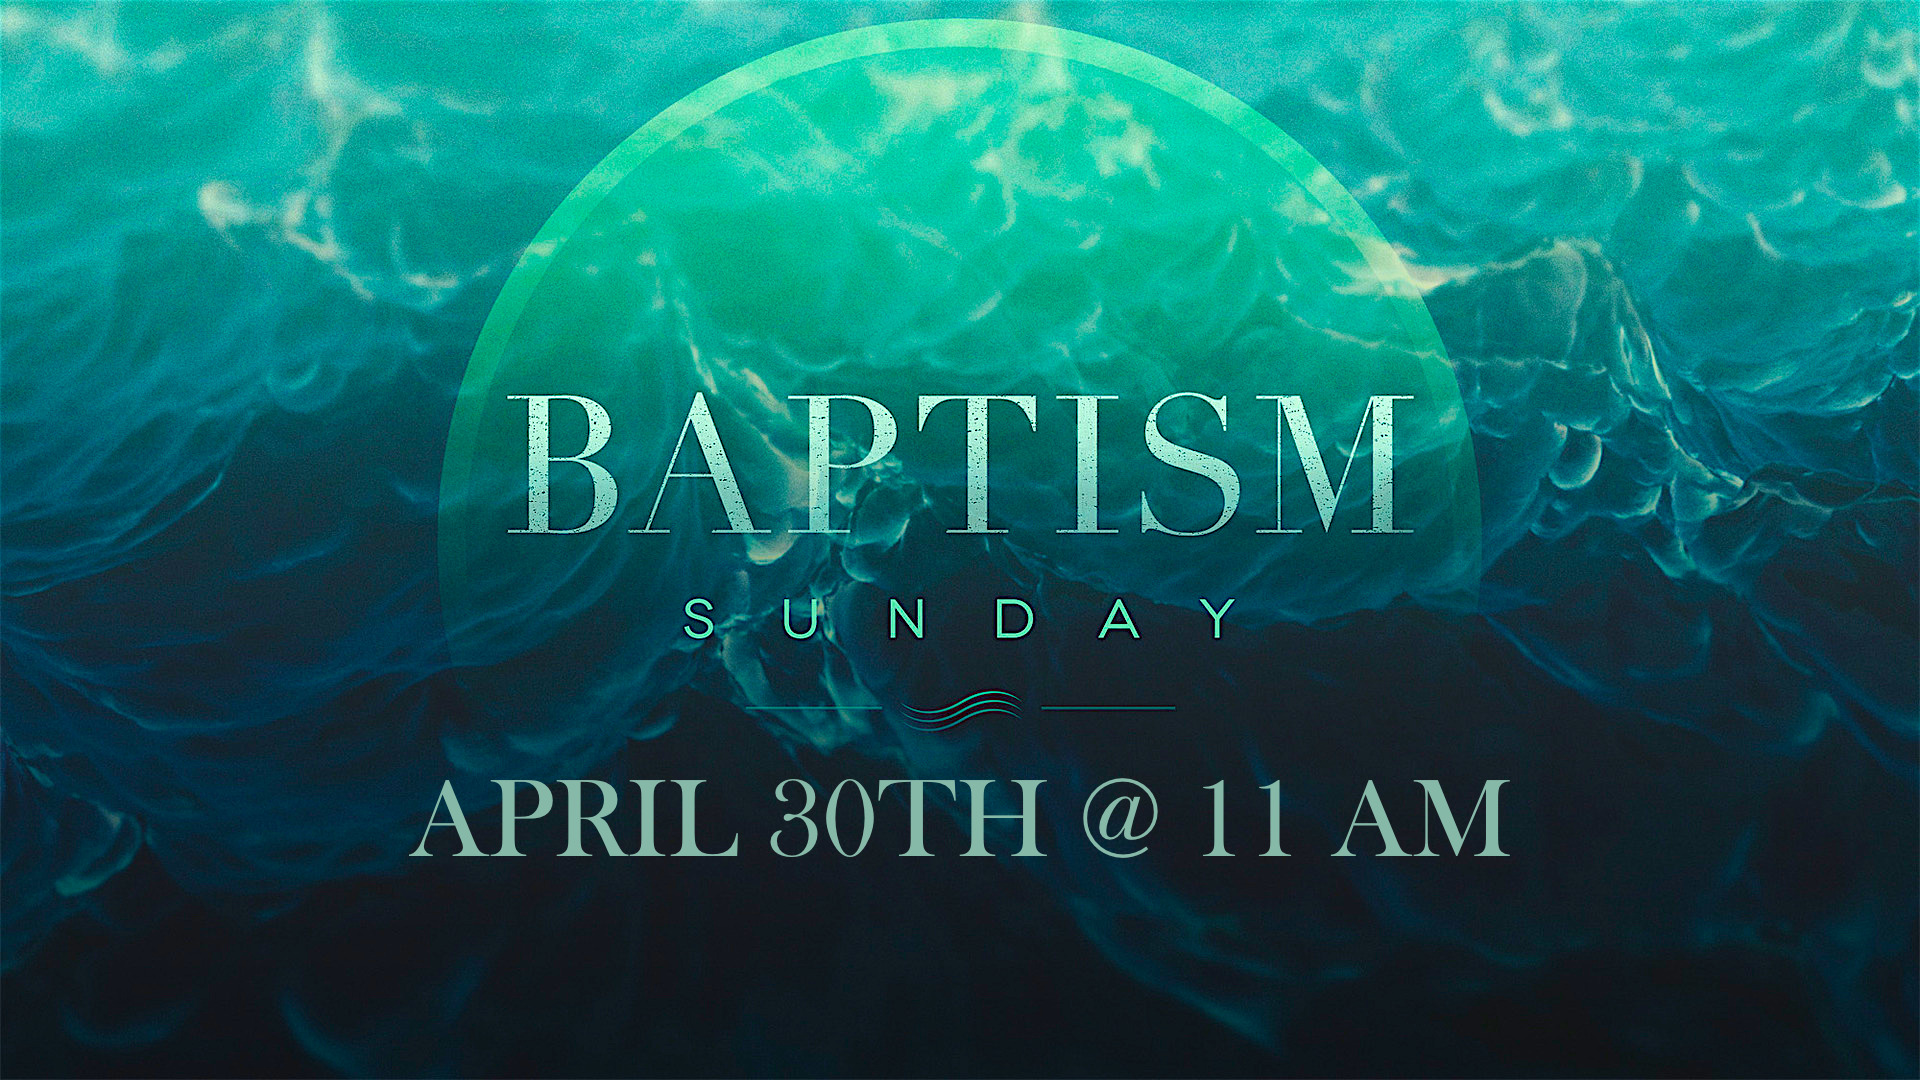 If you are interested in taking the next step in your faith see a staff member and get signed up for Baptism on April 30th.